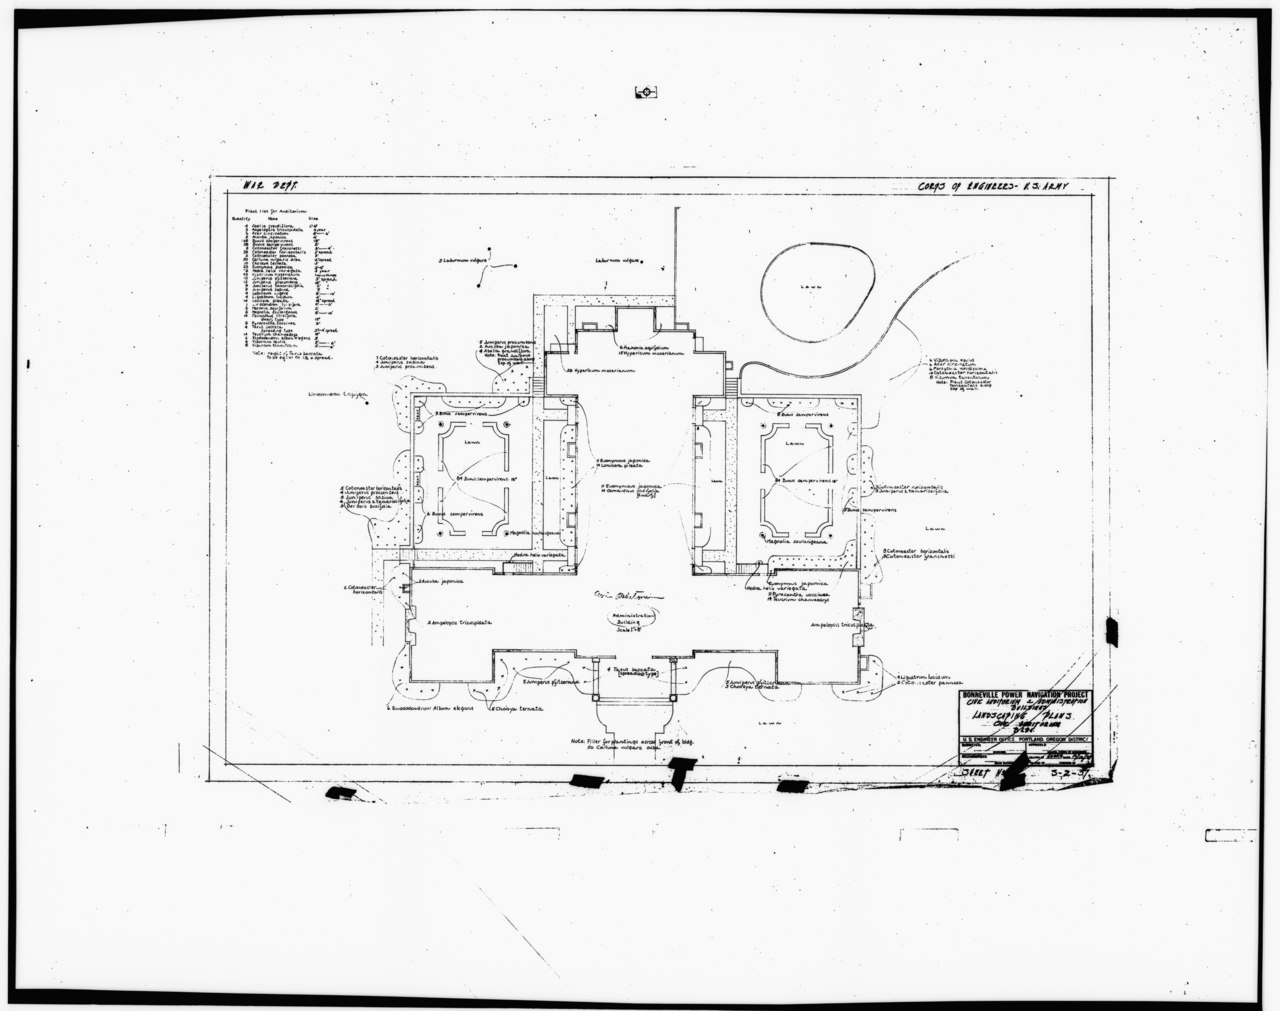 File Photocopy Of Original Construction Drawing Dated 13